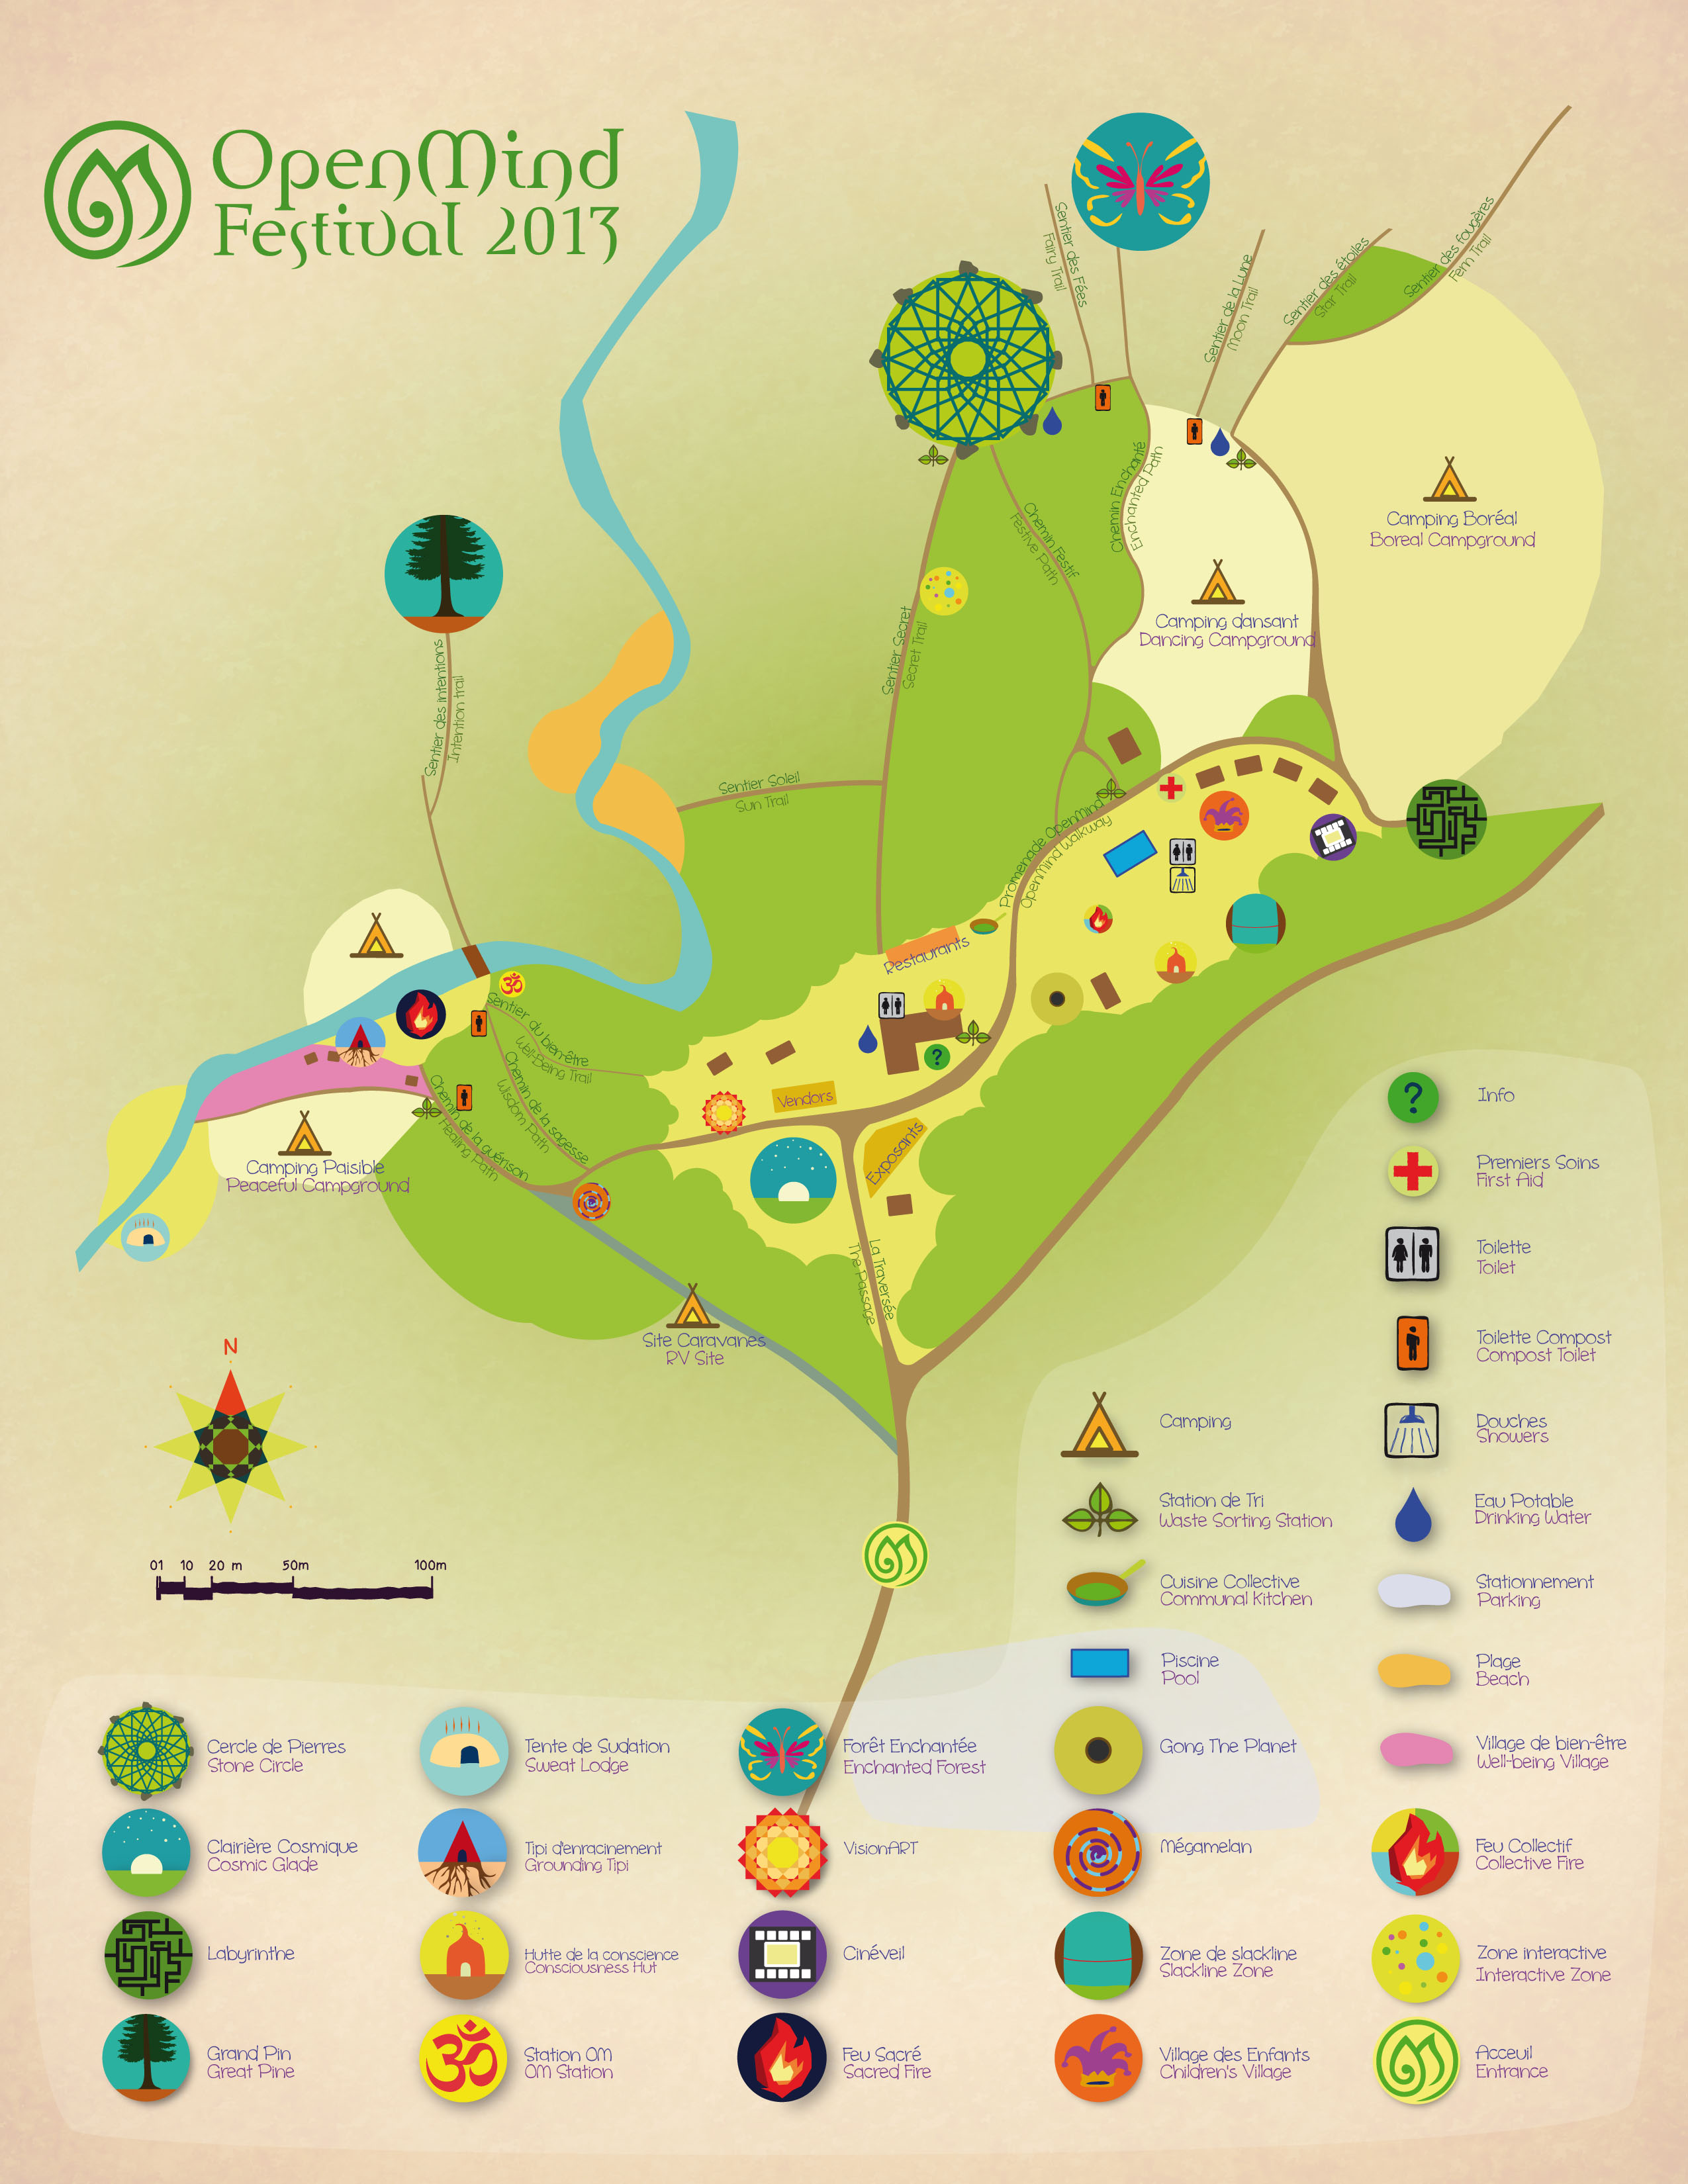 Open Mind Festival Site Map 2013